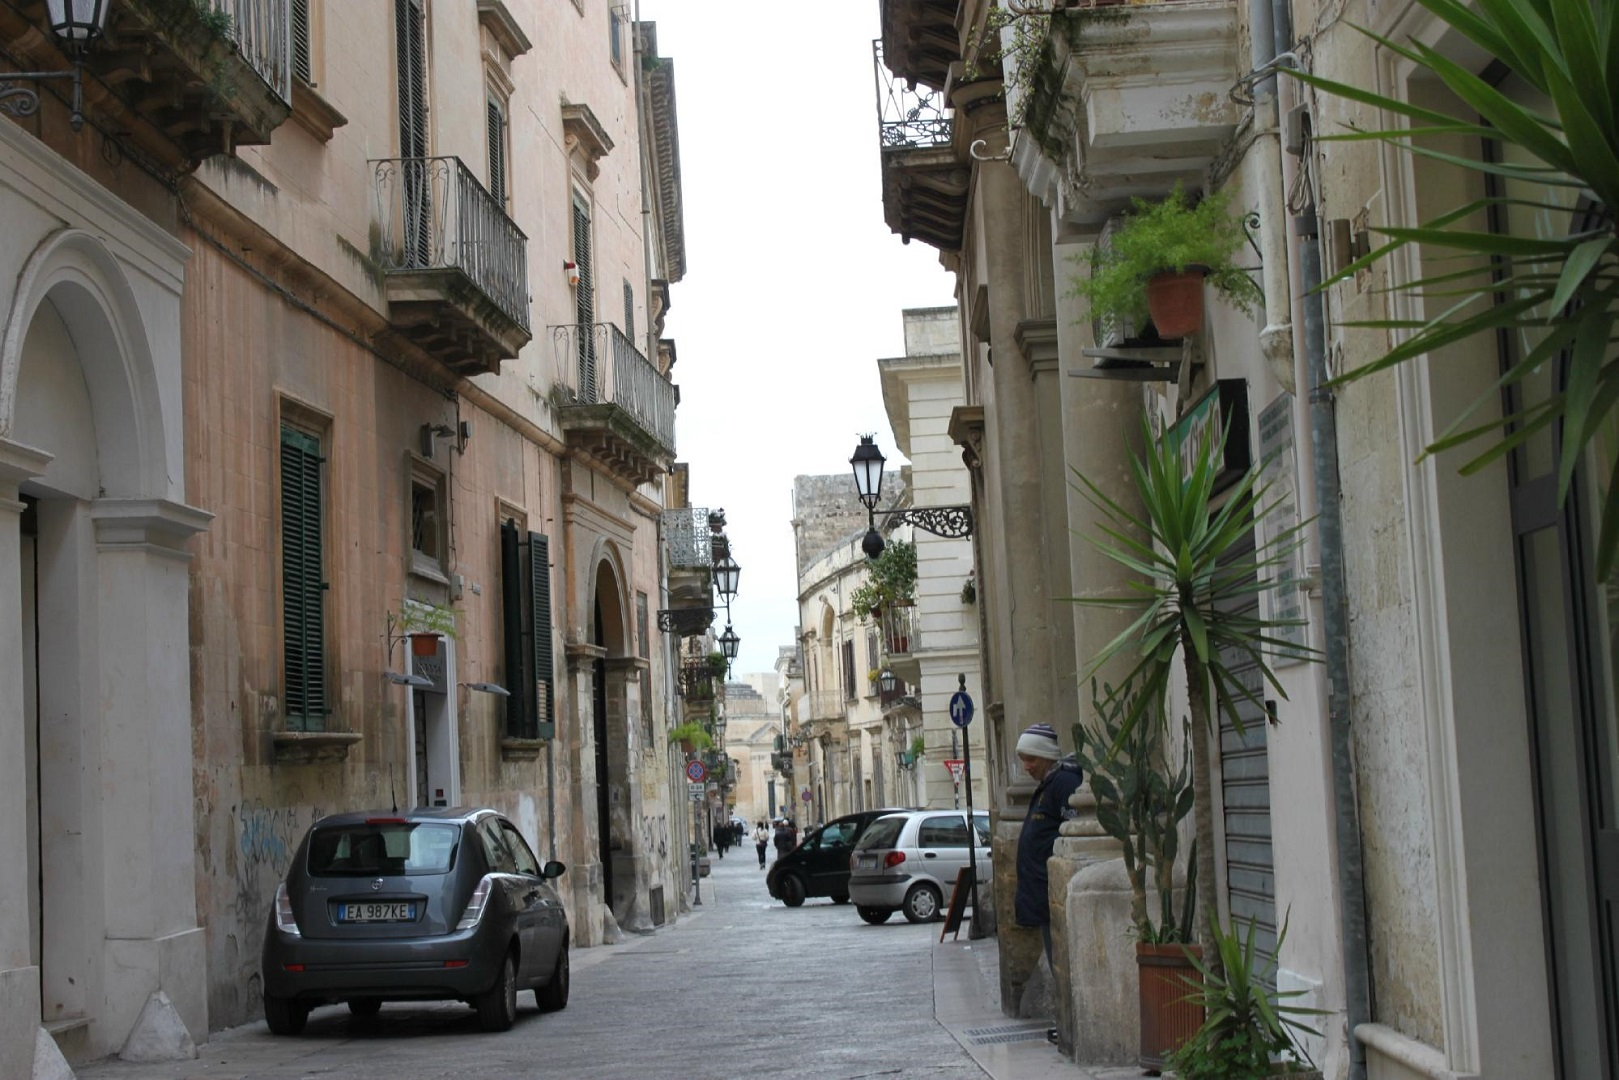 A narrow city street with cars parked on the side of a building at LUNA PIENA.